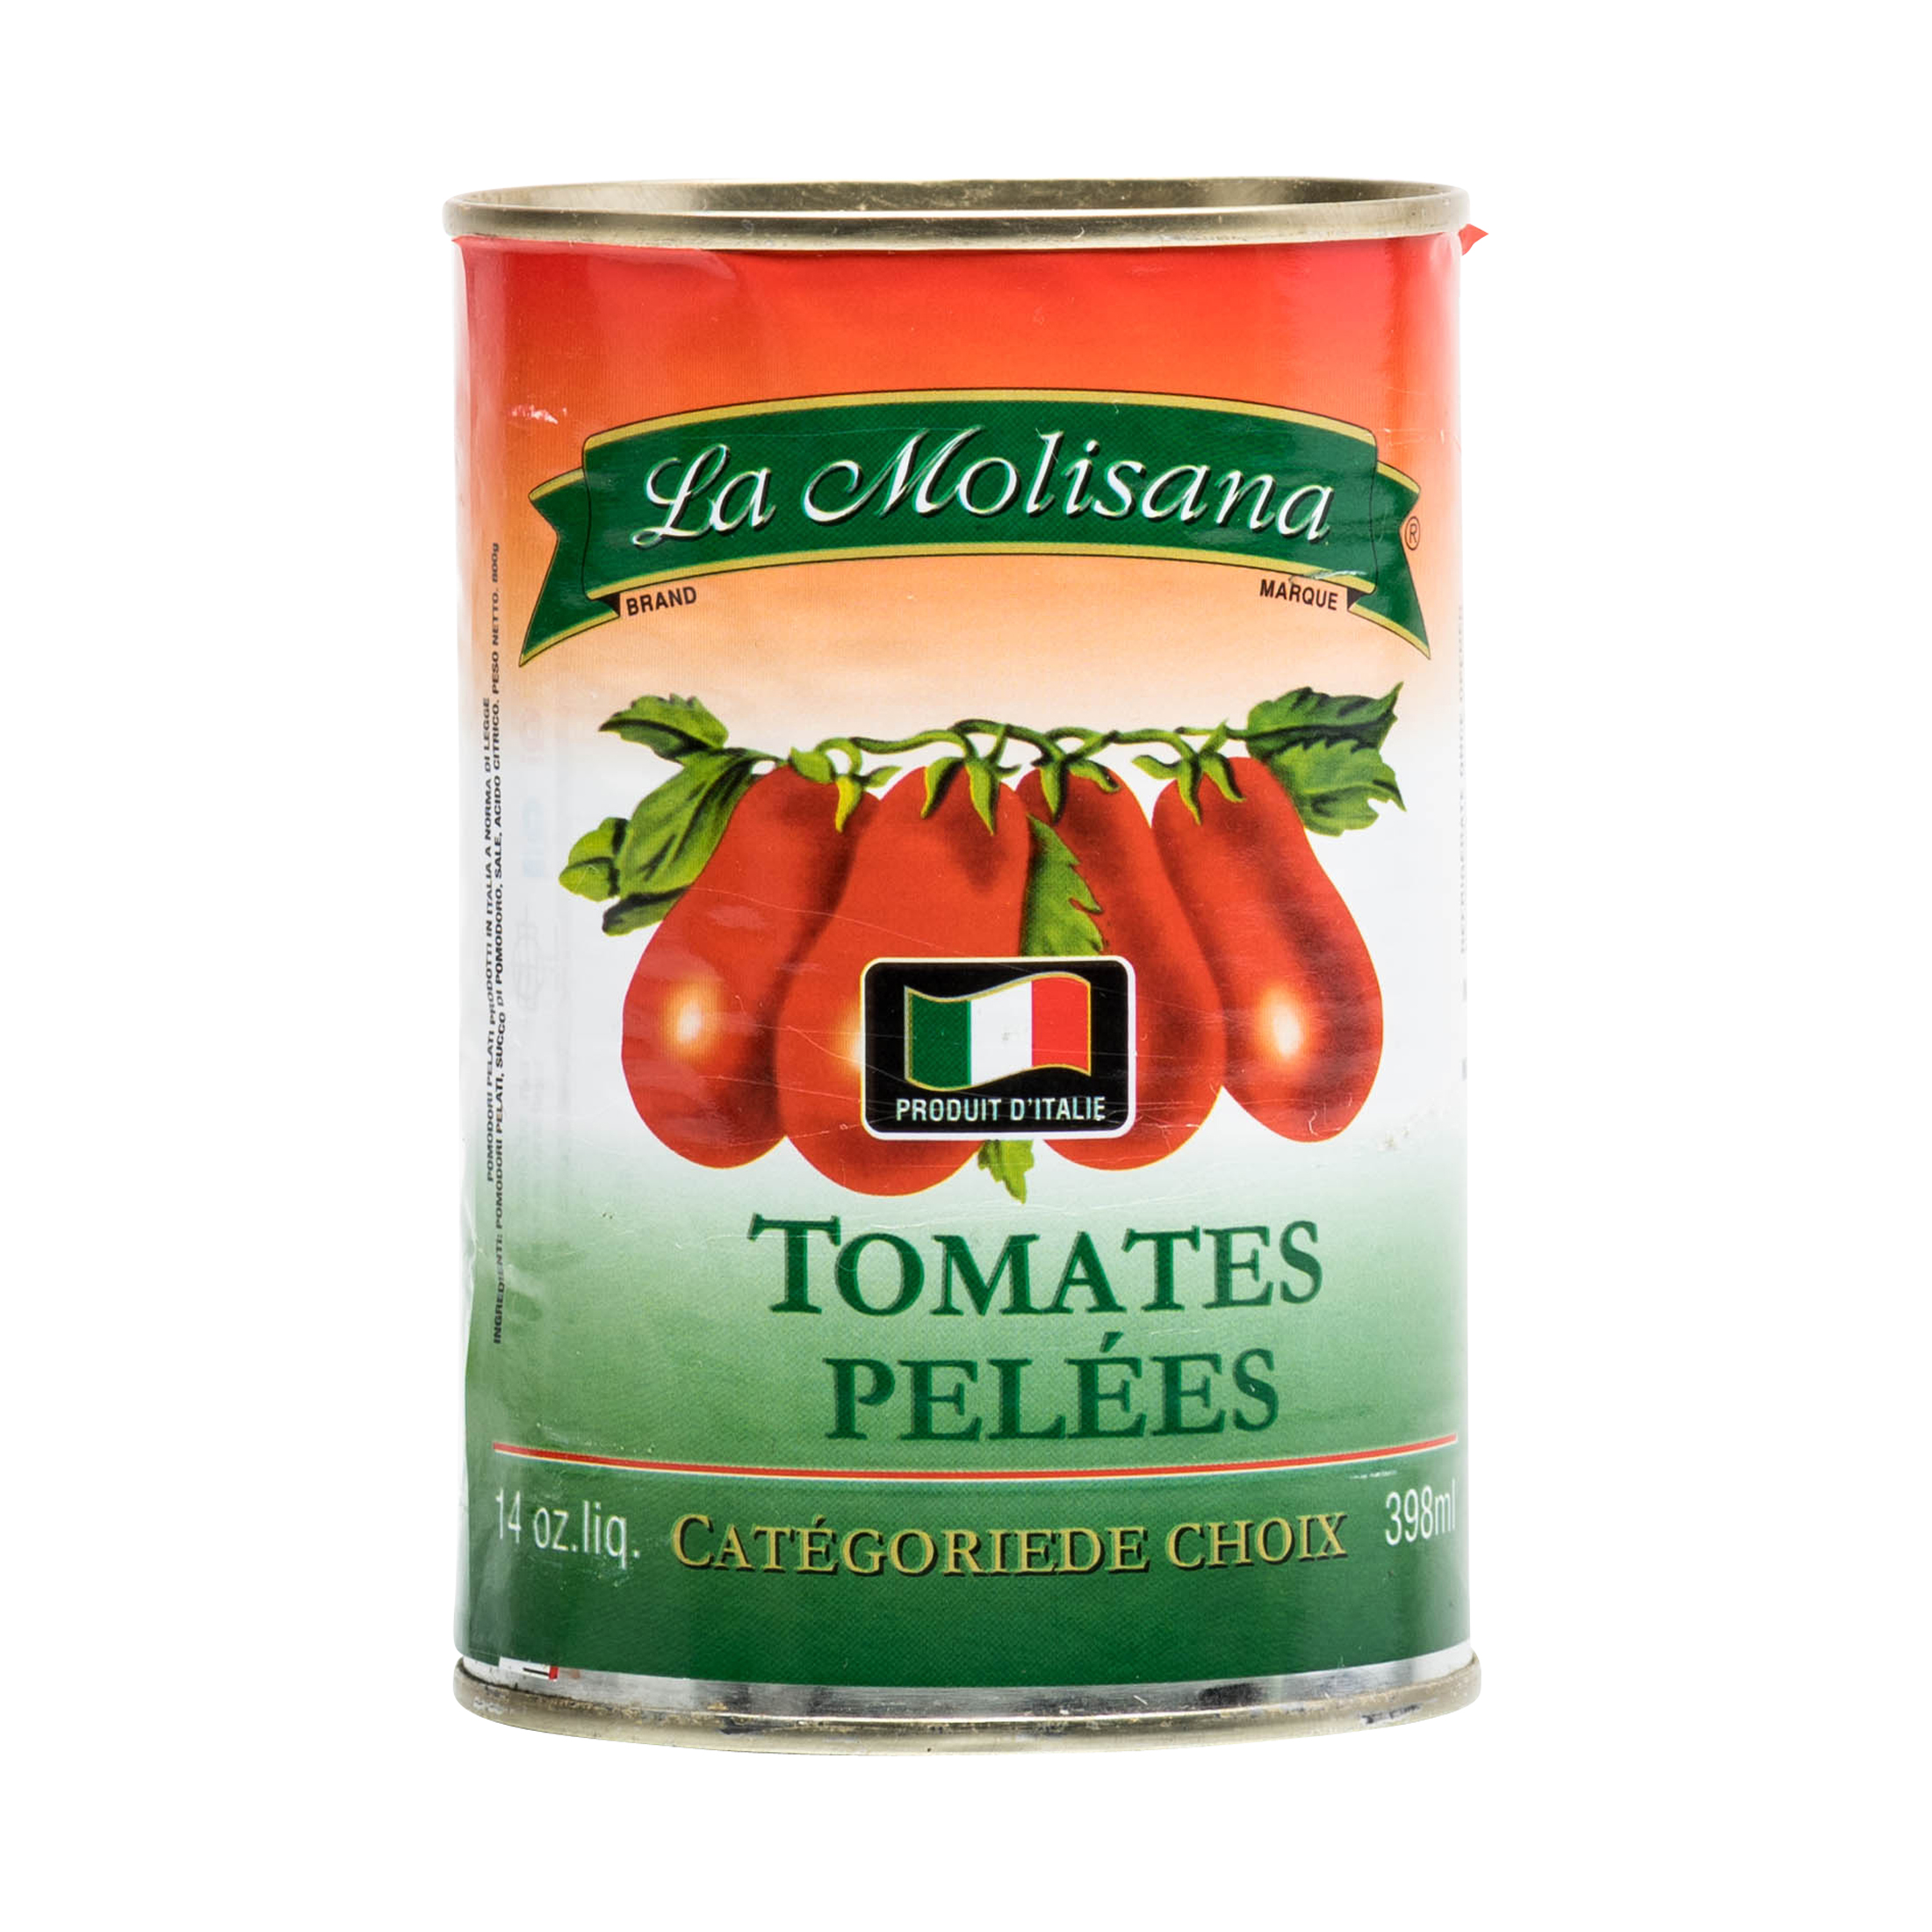 CANNED PEELED PLUM TOMATOES